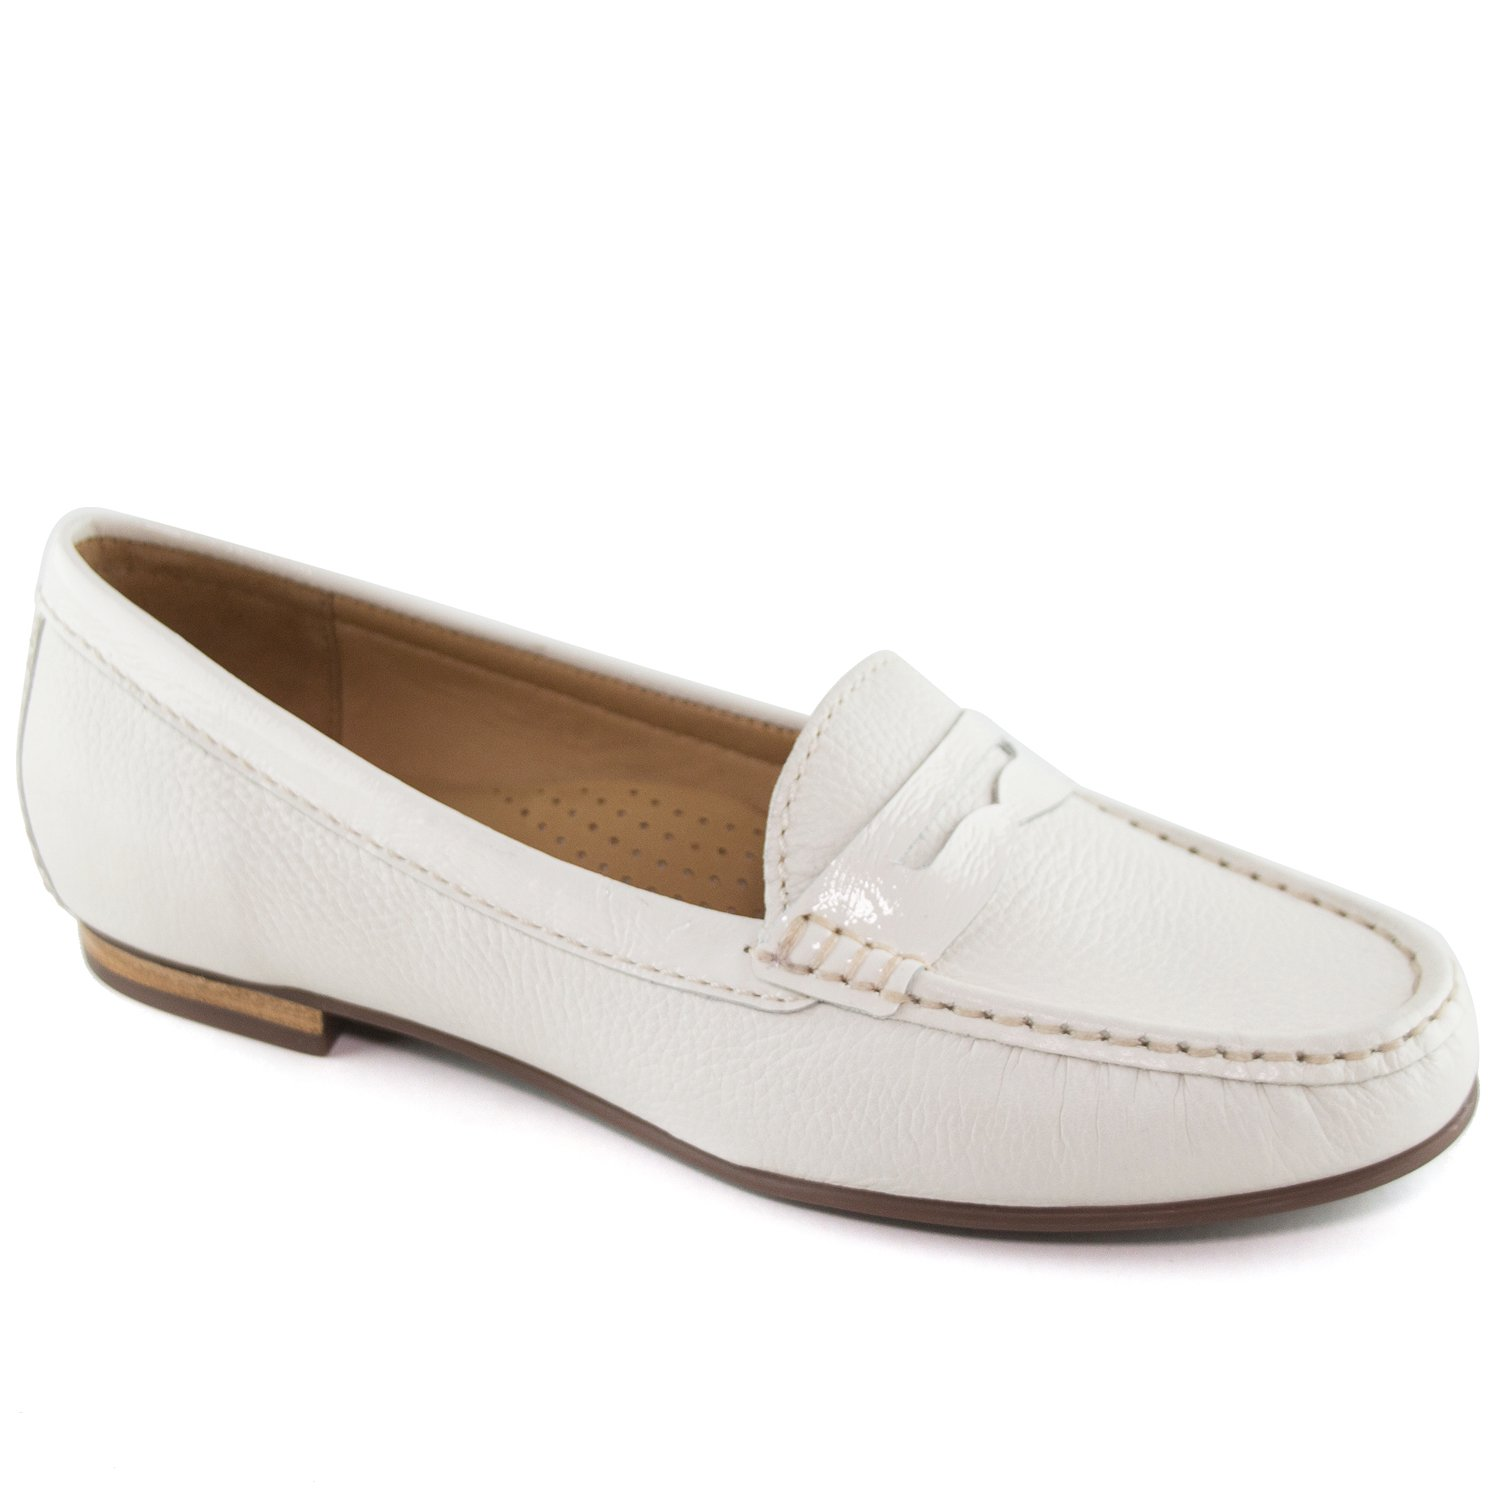 Driver Club USA Women's Genuine Leather Made In Brazil Greenwich Fashion Cream Grainy Penny Loafer 6.5